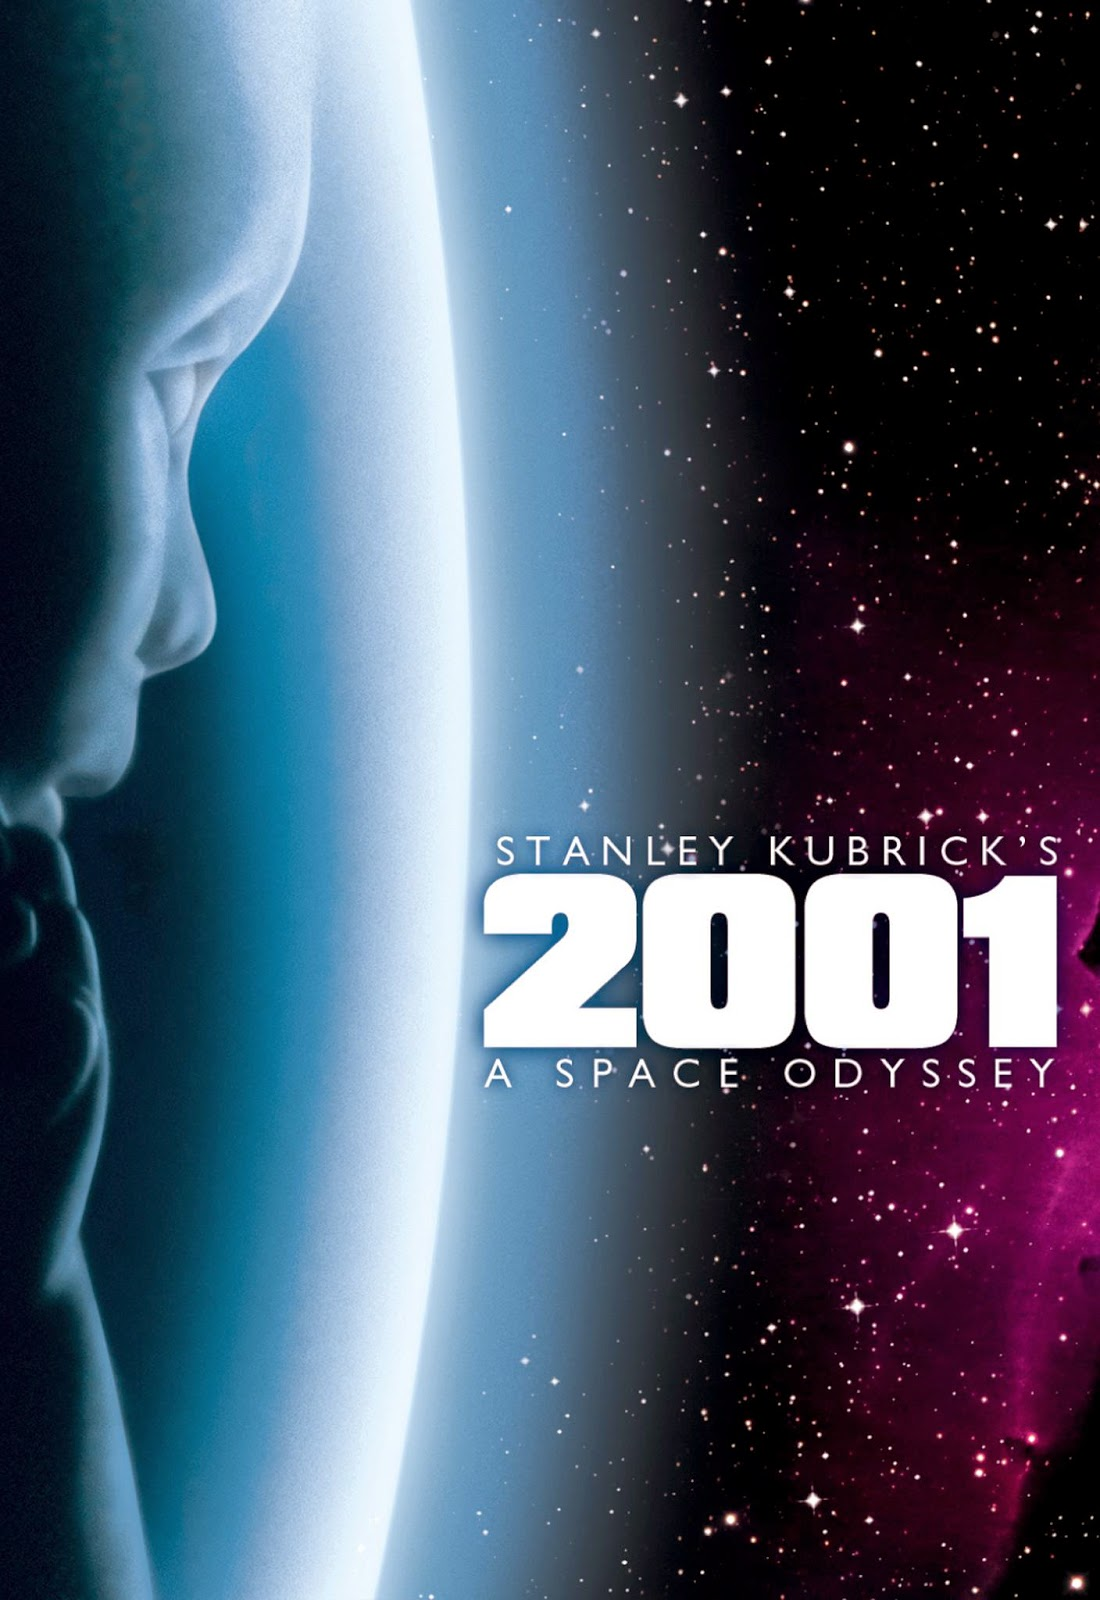 Film Next 2001 A Space Odyssey Pictures border=